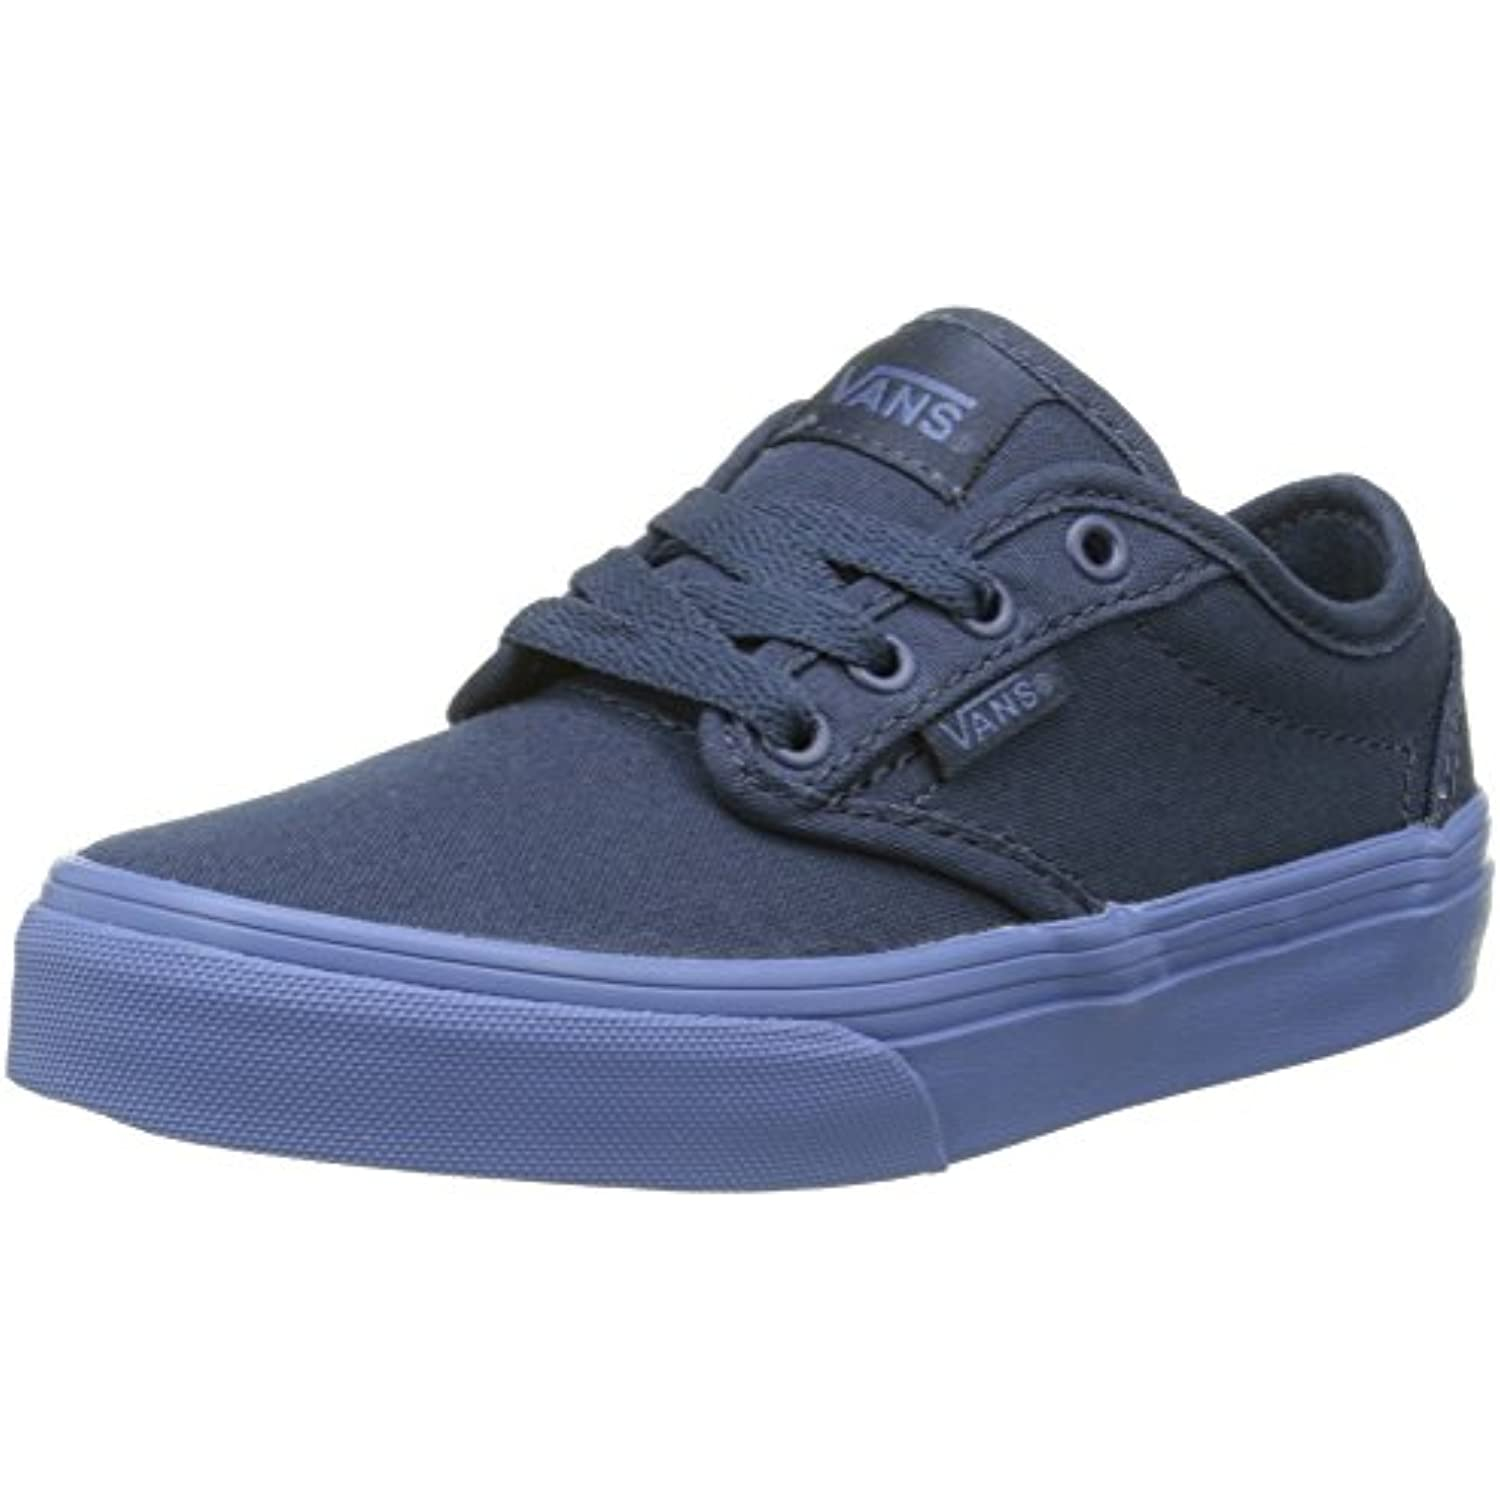 Vans Btwood - Scarpe da Ginnastica Basse Blues/Blue), Bambino, Blu (Check Liner/Dress Blues/Blue), Basse 32 EU Parent af4bfd